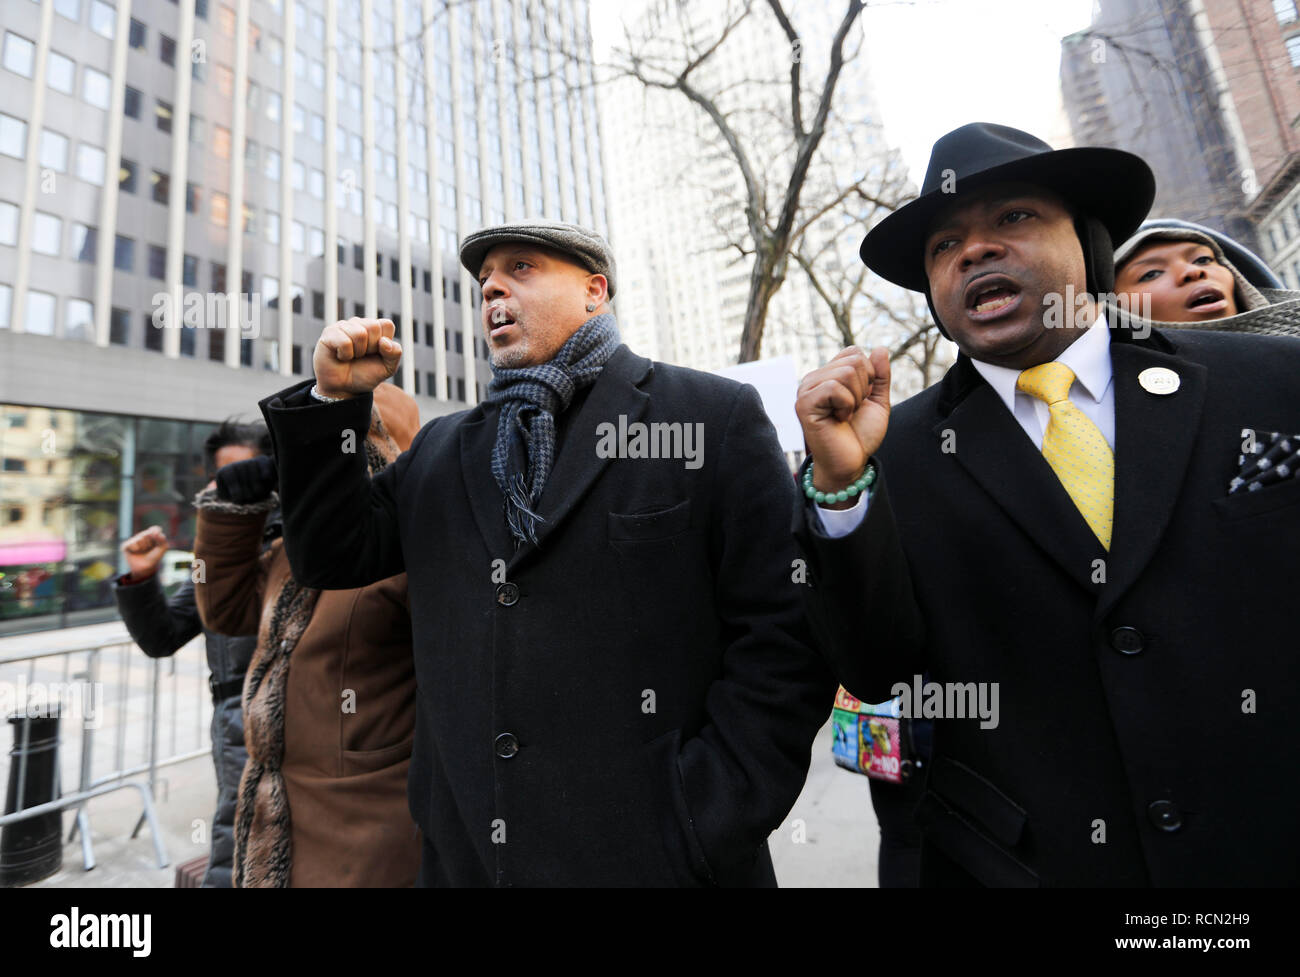 New York, USA. 15th Jan, 2019. People attend a rally to protest against government shutdown outside a federal government building in New York, the United States, Jan. 15, 2019. Dozens of federal employees and their representatives as well as activists gathered here on Tuesday to protest against the ongoing partial government shutdown, which is now the longest government closure in U.S. history. Credit: Wang Ying/Xinhua/Alamy Live News Stock Photo